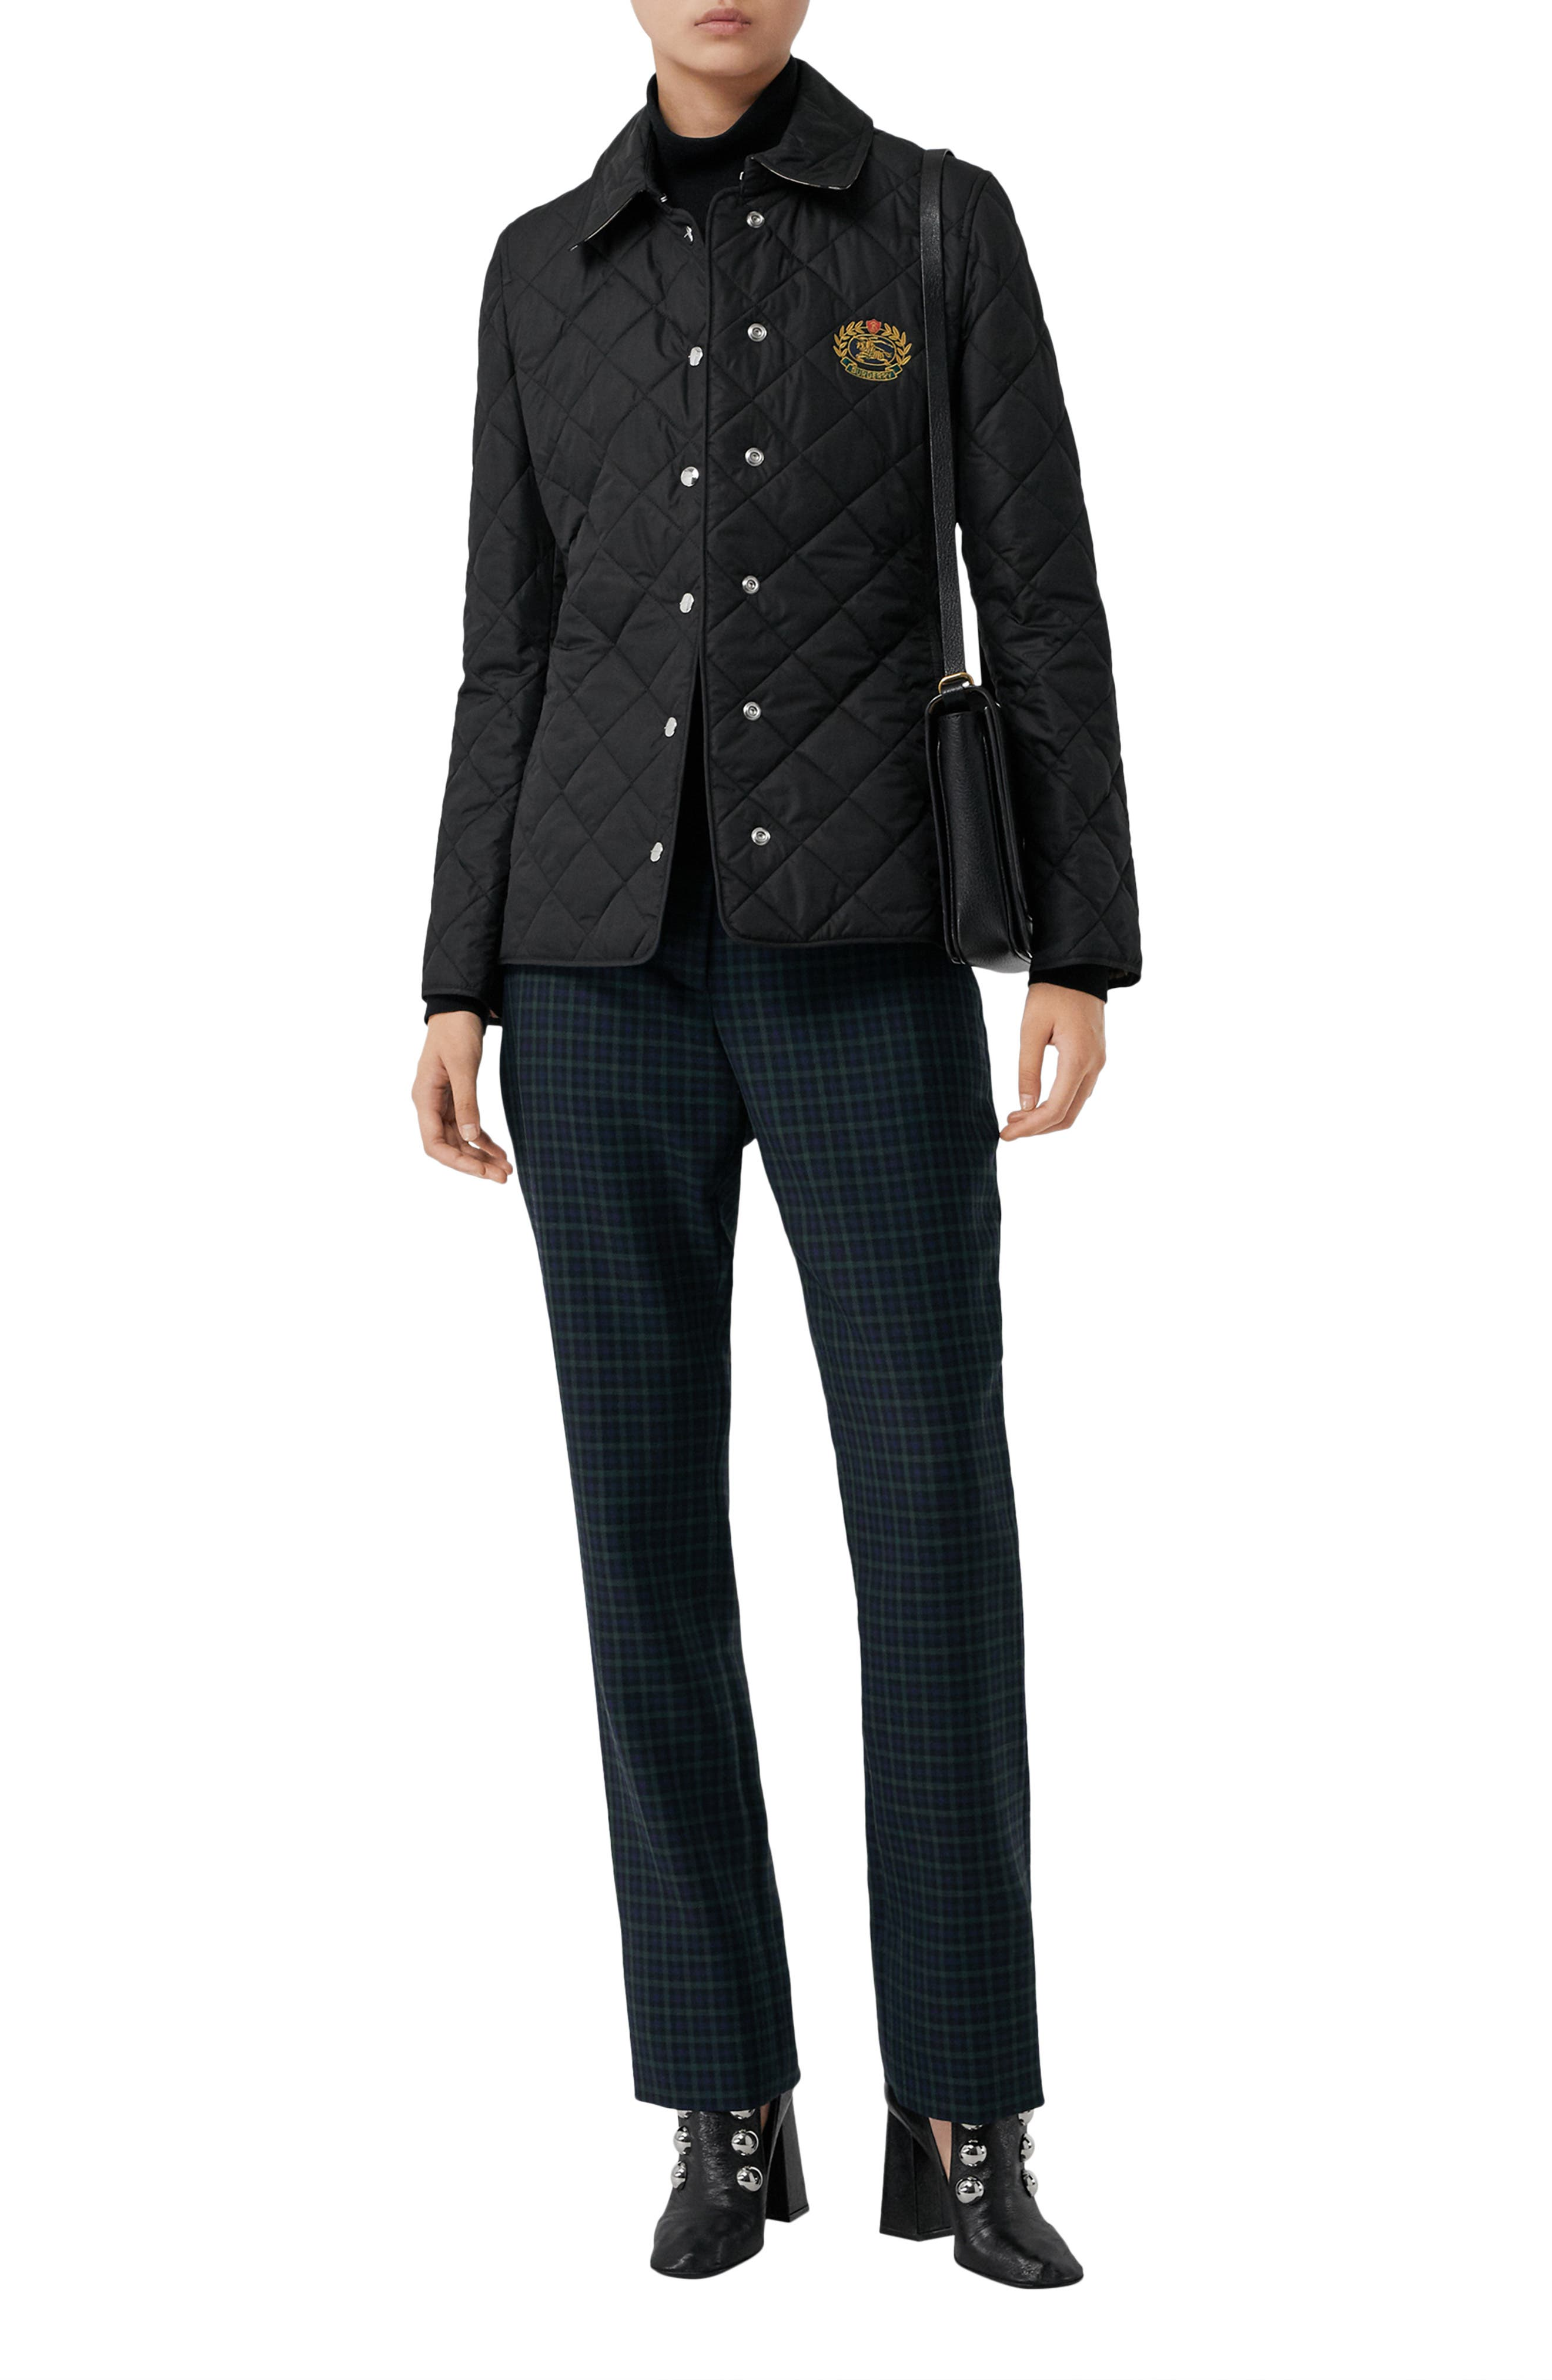 Franwell Diamond Quilted Jacket,                             Alternate thumbnail 6, color,                             BLACK